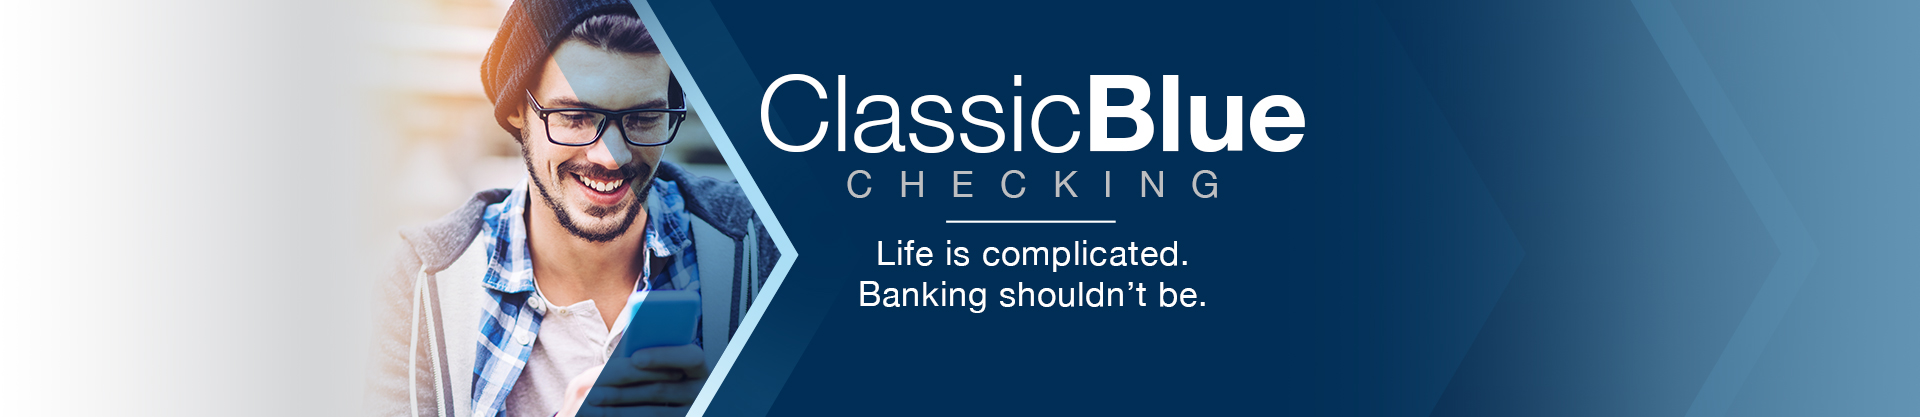 ClassicBlue Checking. Life is complicated. Banking shouldn't be.